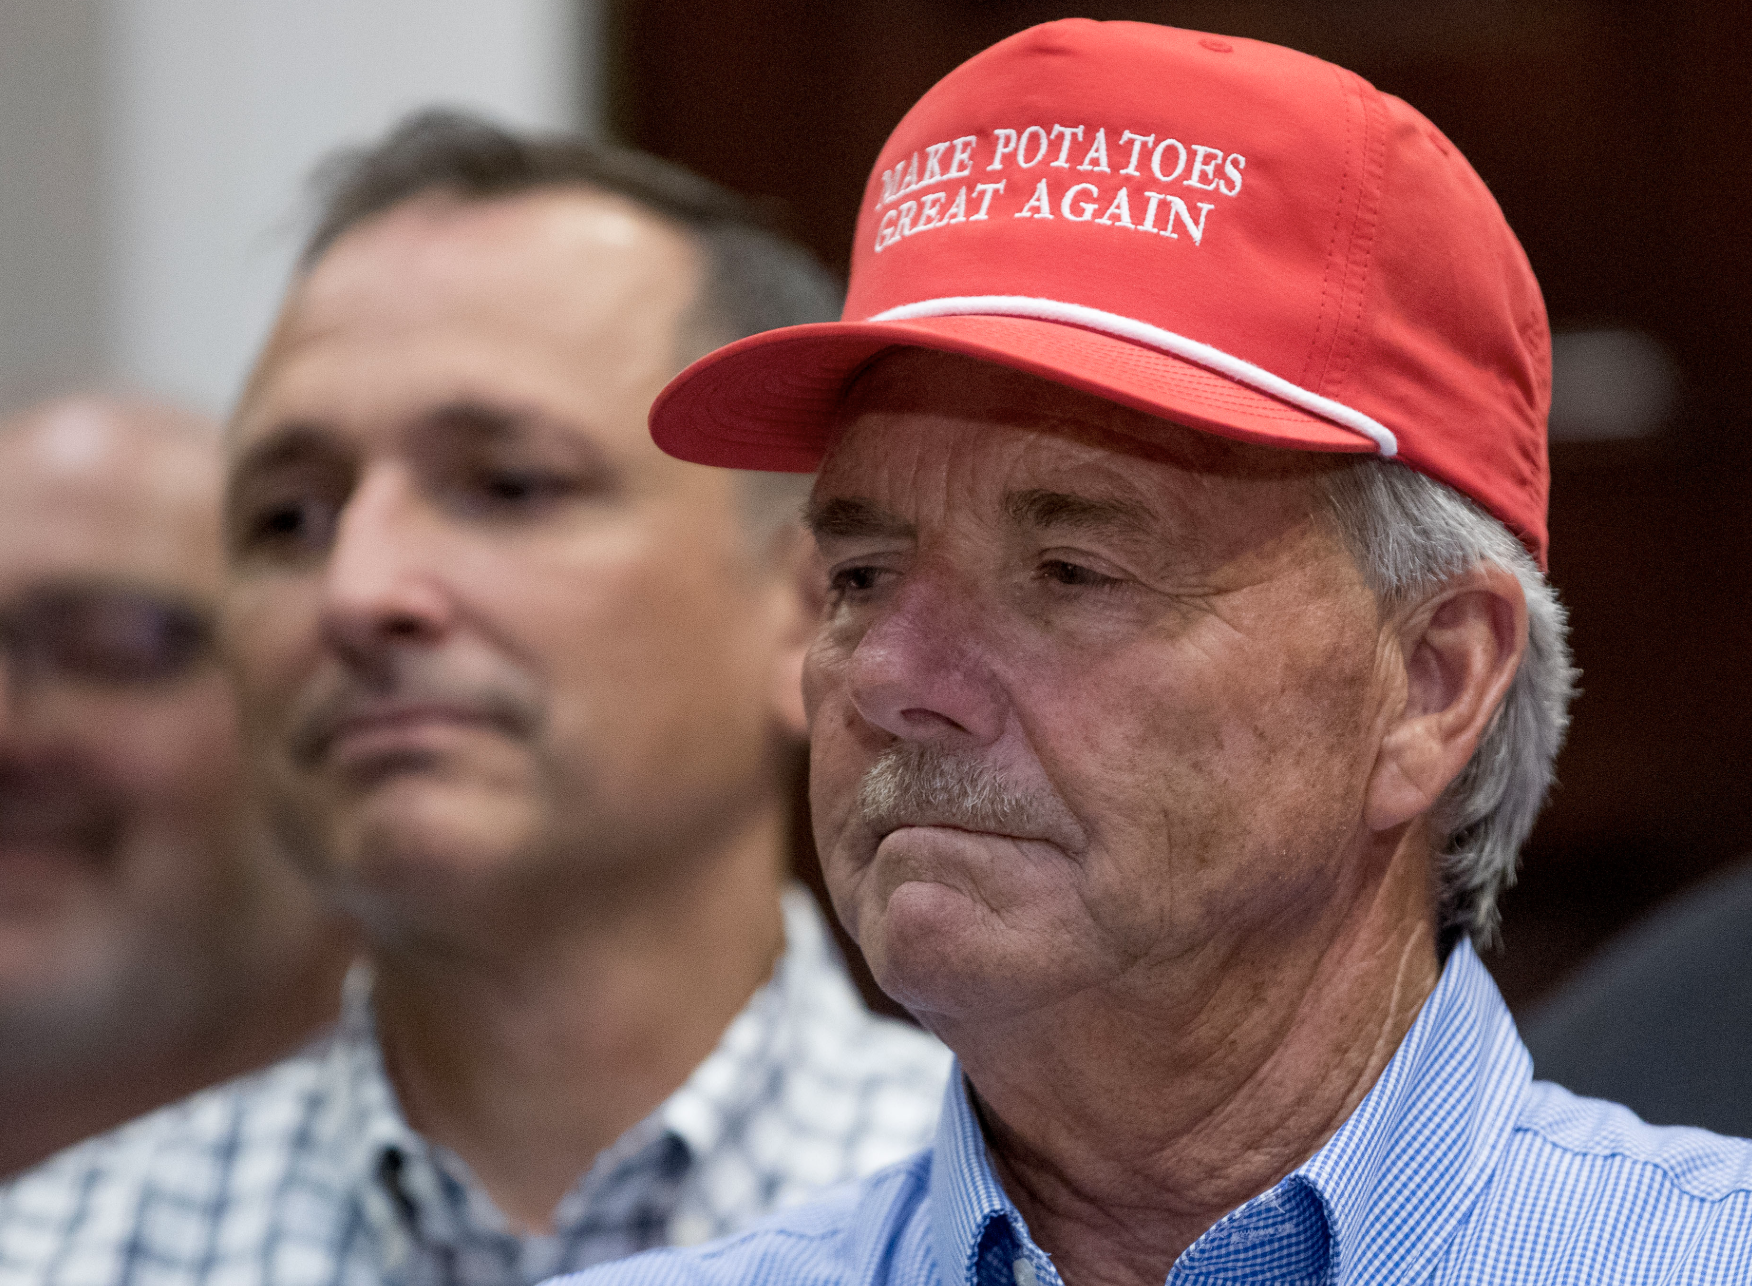 American farmer: Trump 'took away all of our markets'